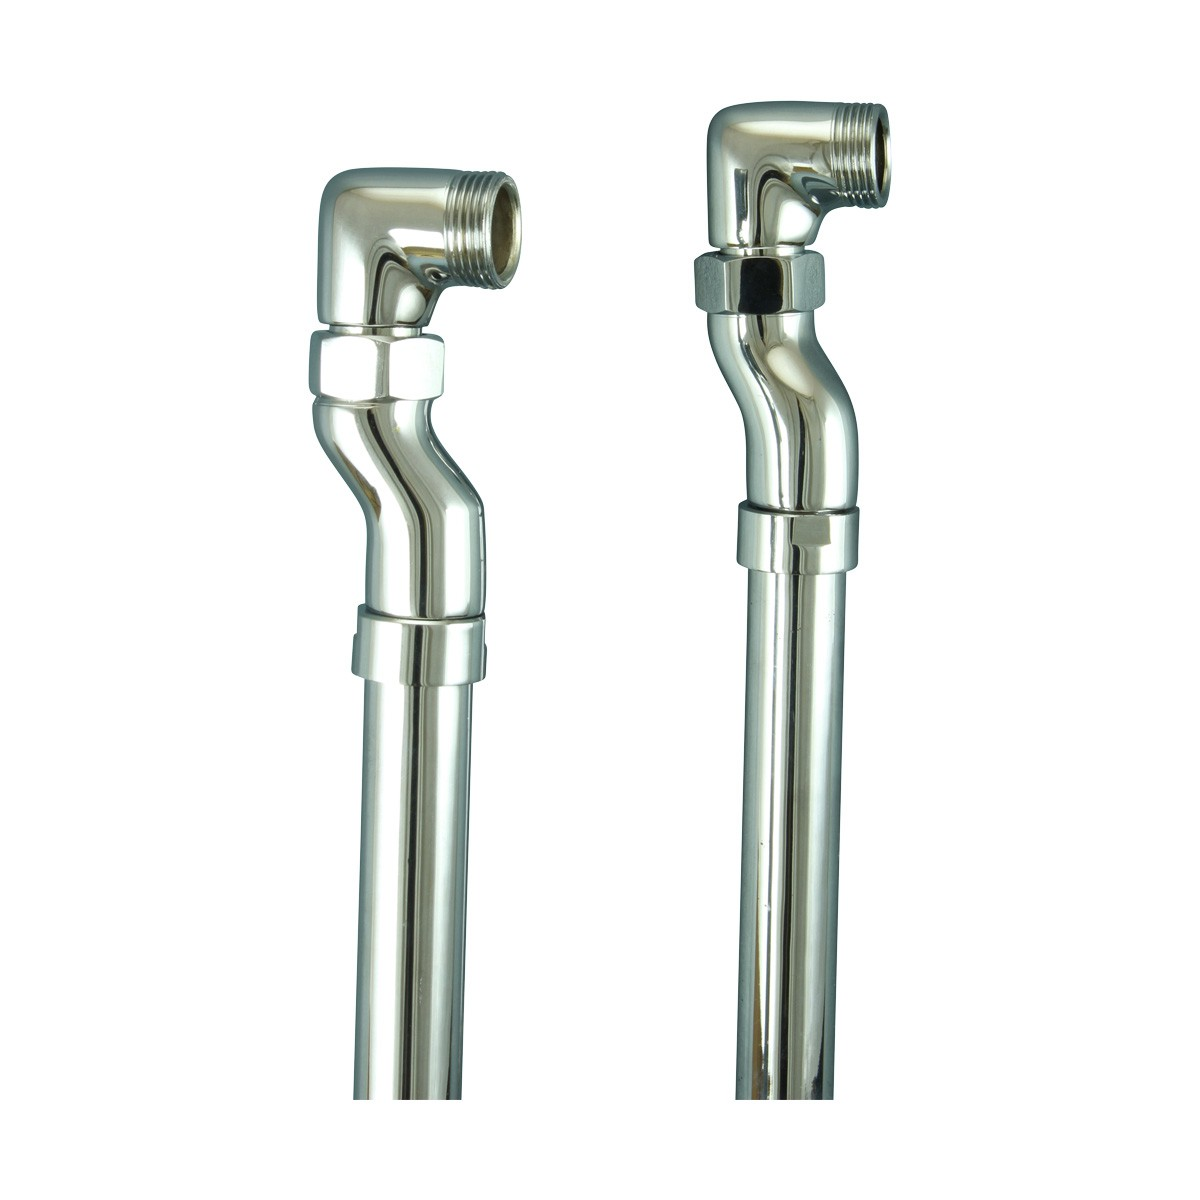 Freestanding Clawfoot Tub Faucet Parts Supply Line Chrome Supply Line Supply Lines Bathroom Supply Line